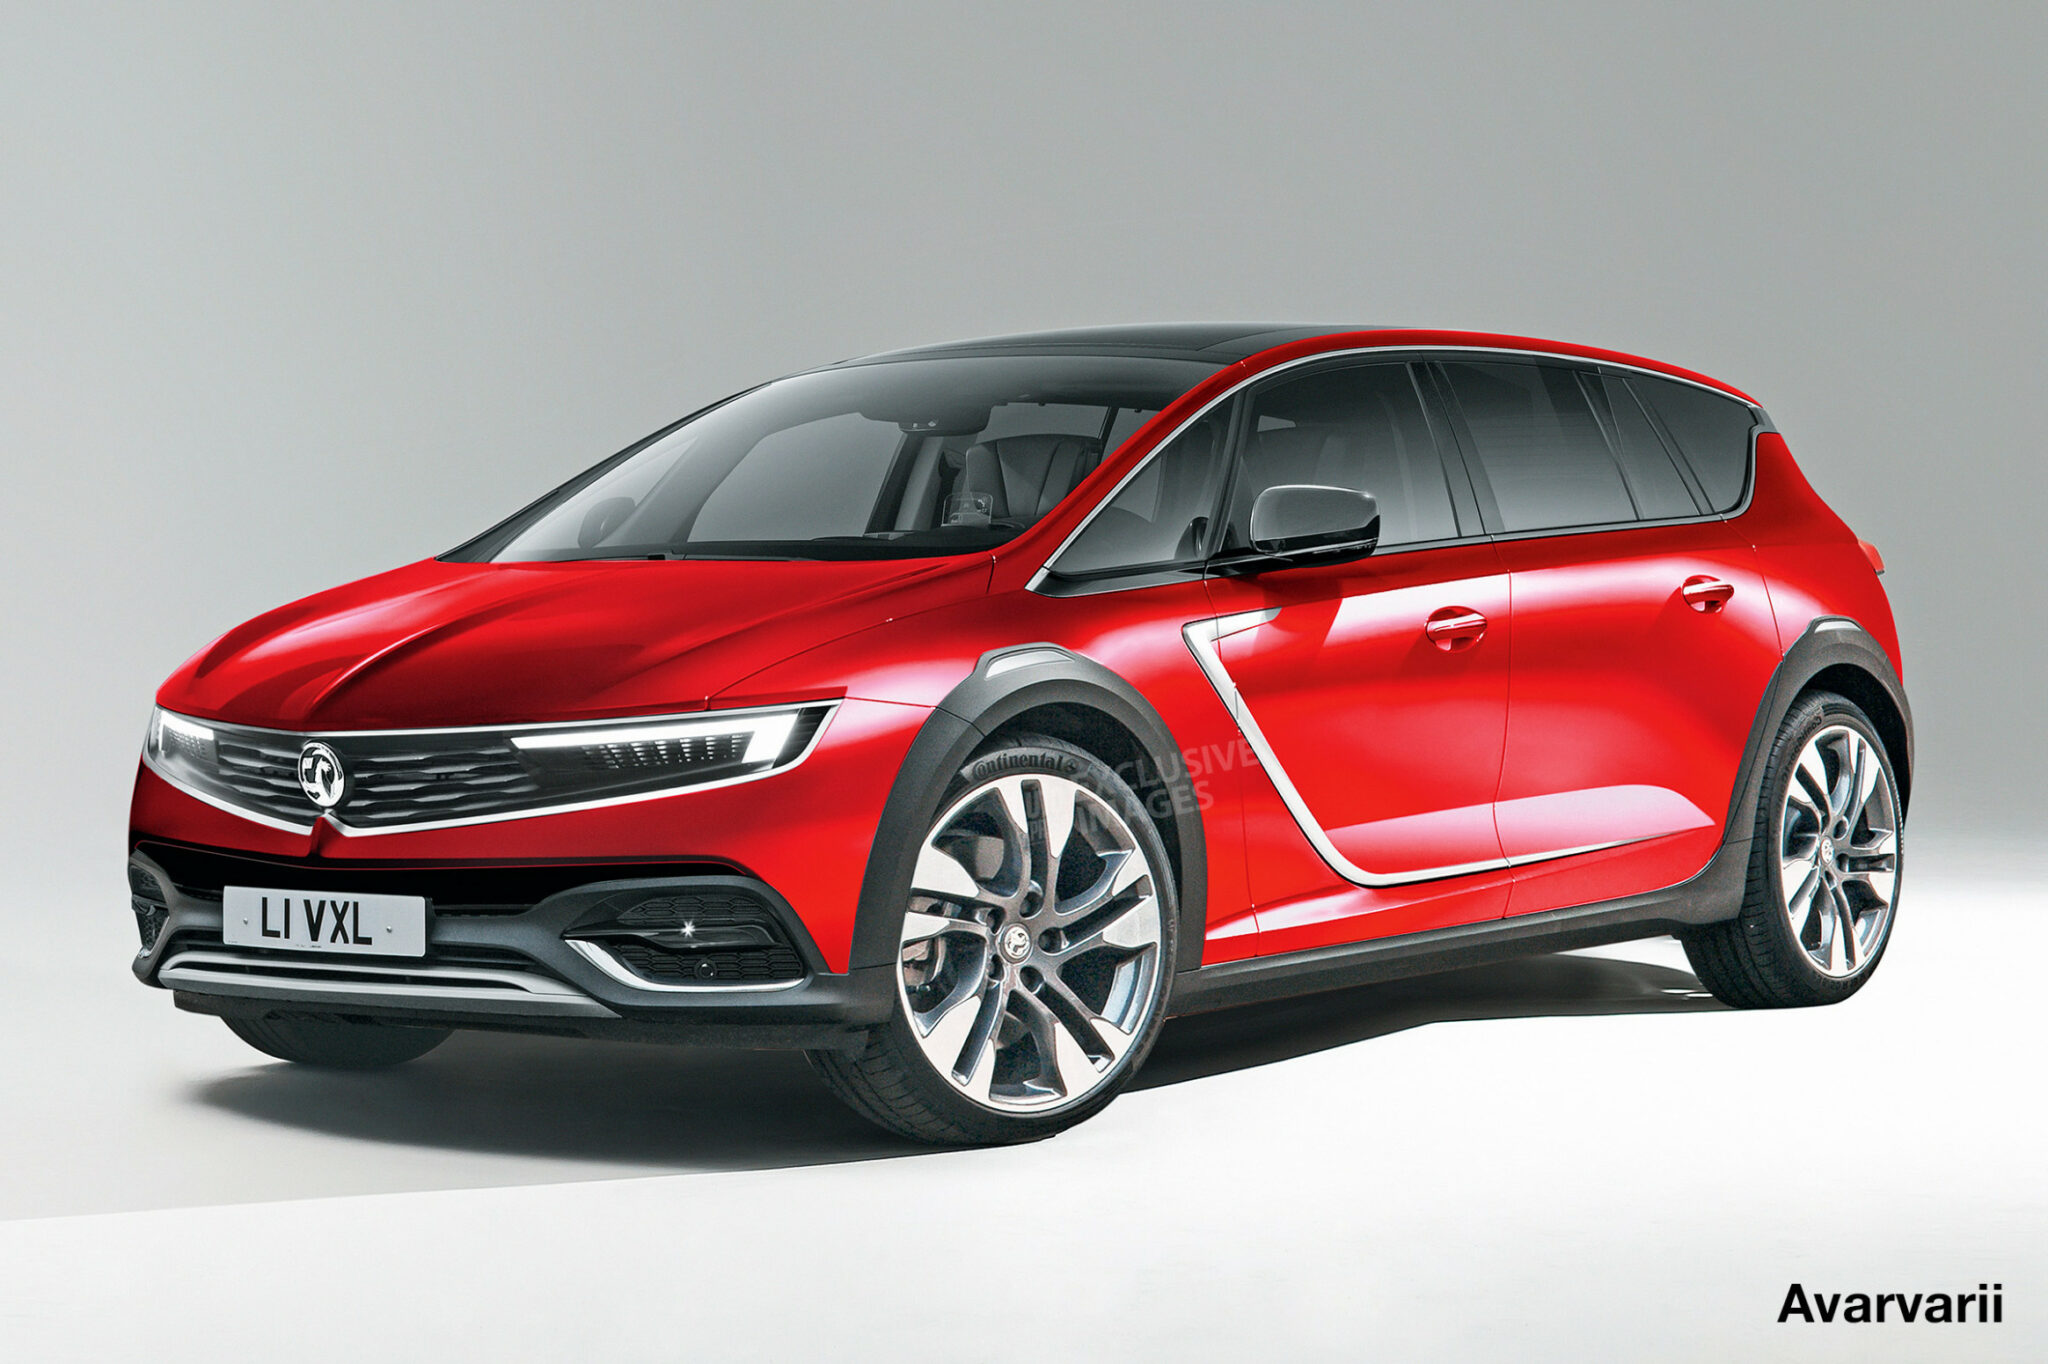 new model and performance opel astra kombi 2022 - cars